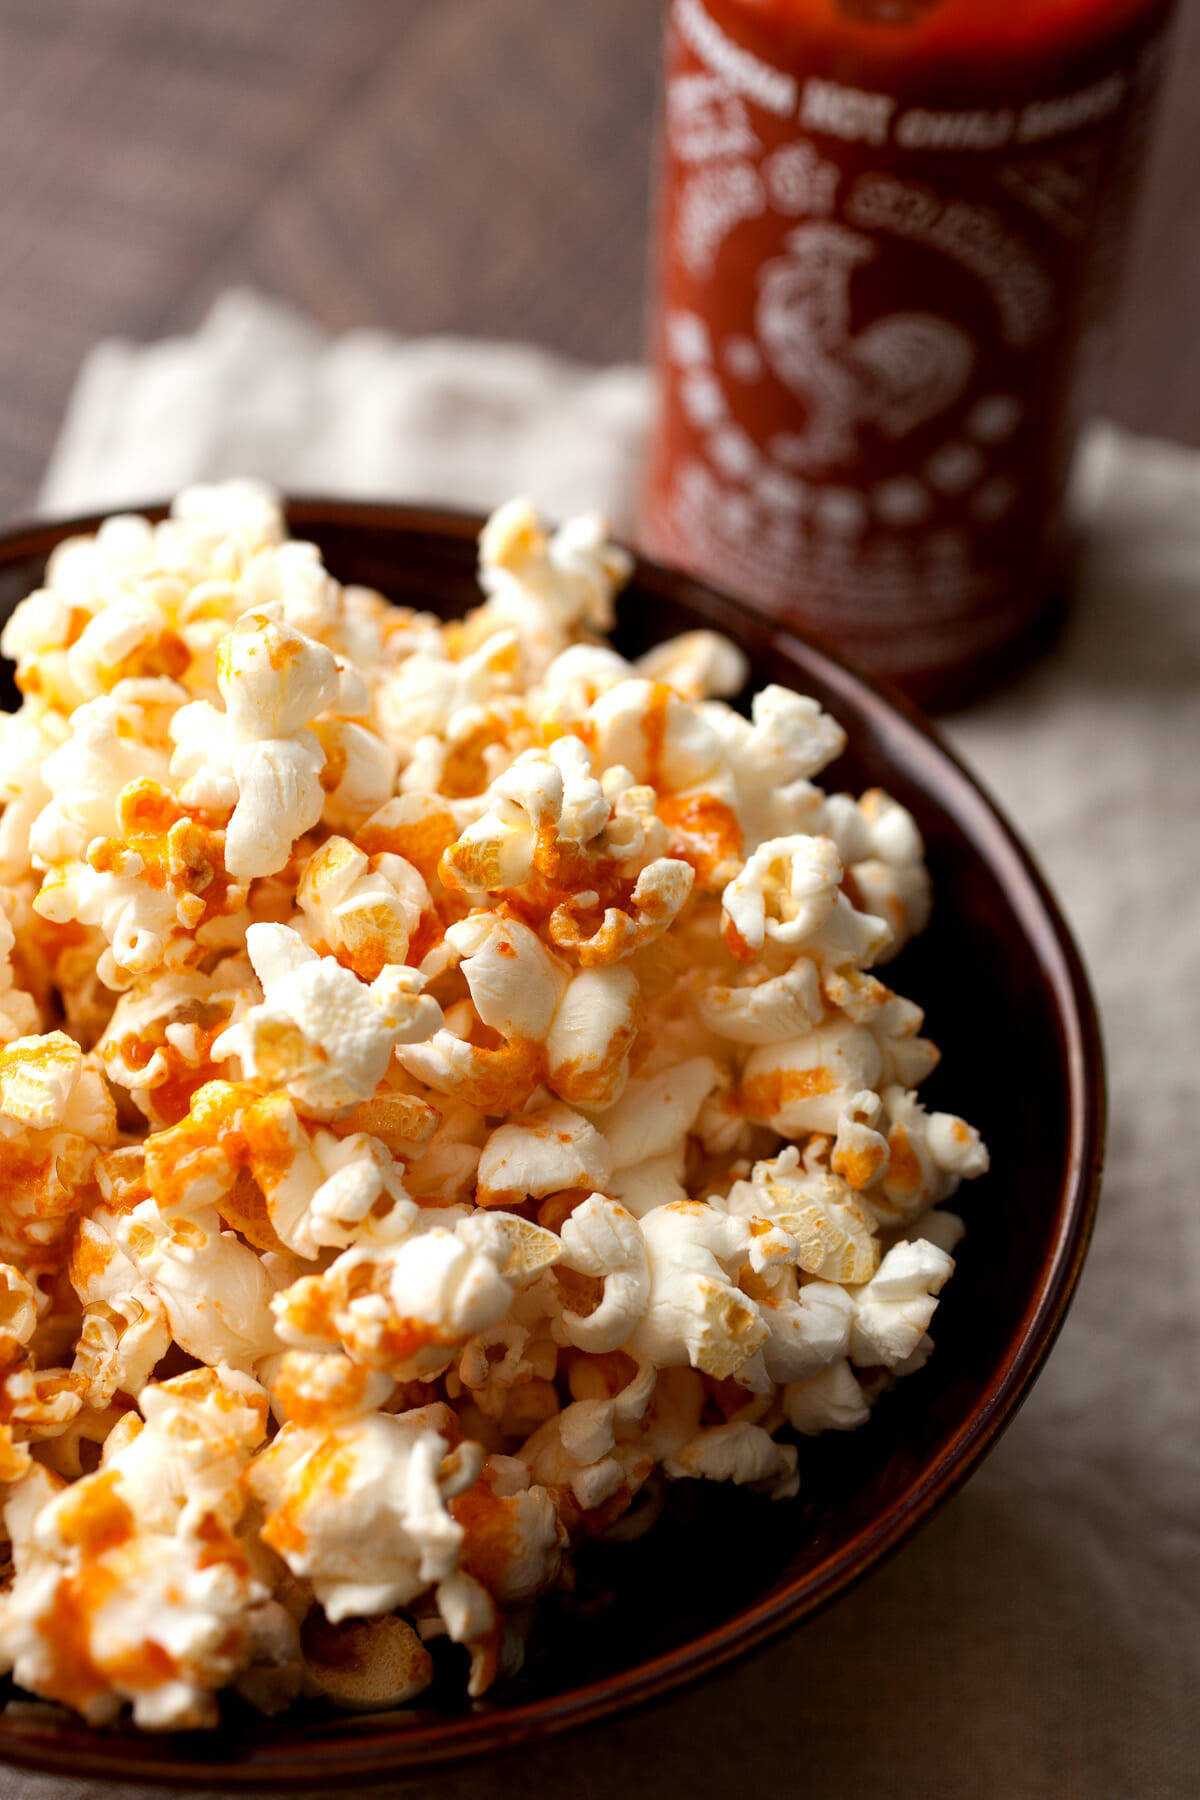 Brown Butter Sriracha Popcorn: Possibly the most addictive popcorn I've ever had. Slightly sweet with a hint of brown butter and just enough spice. Gotta love good popcorn! | macheesmo.com